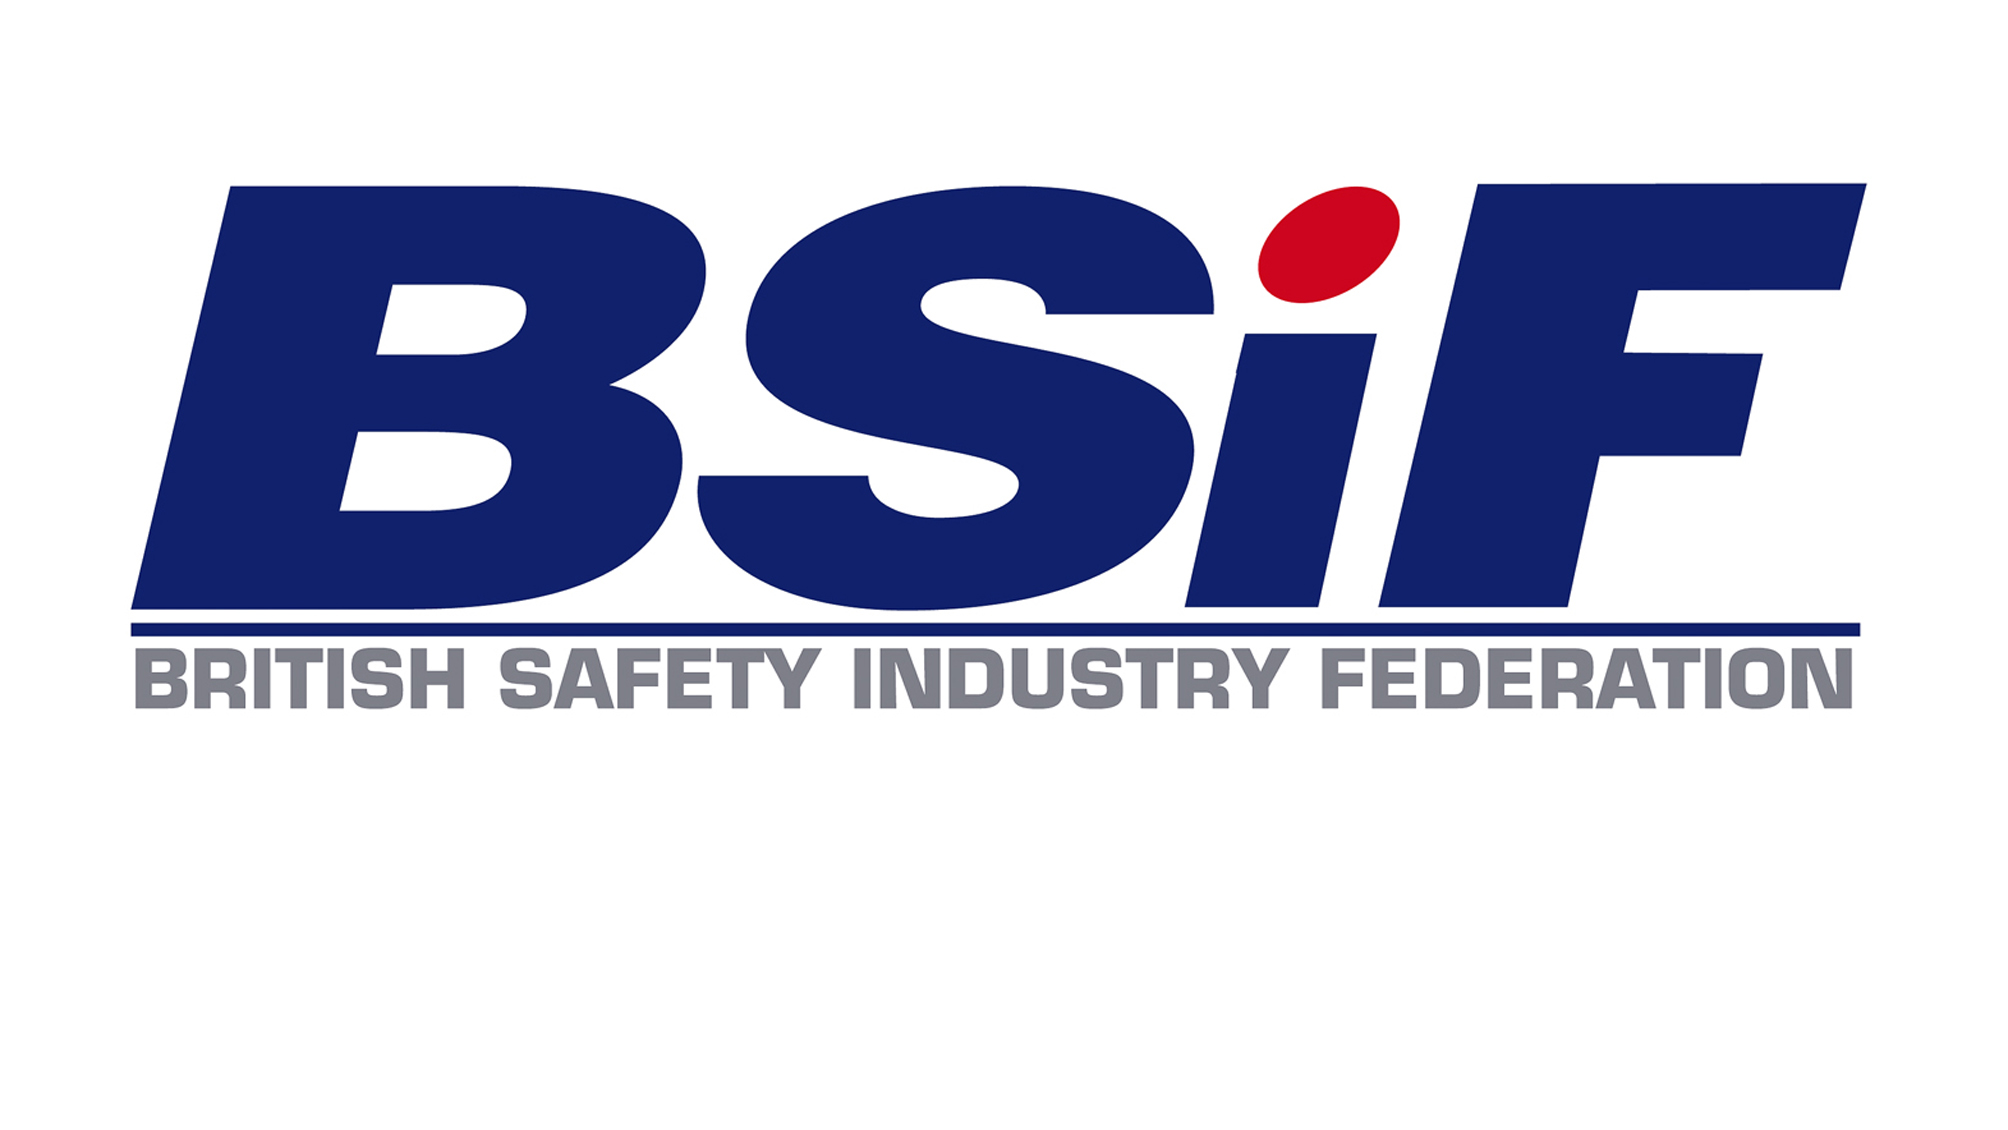 phs Besafe Joins Trusted List of BSIF PPE Suppliers